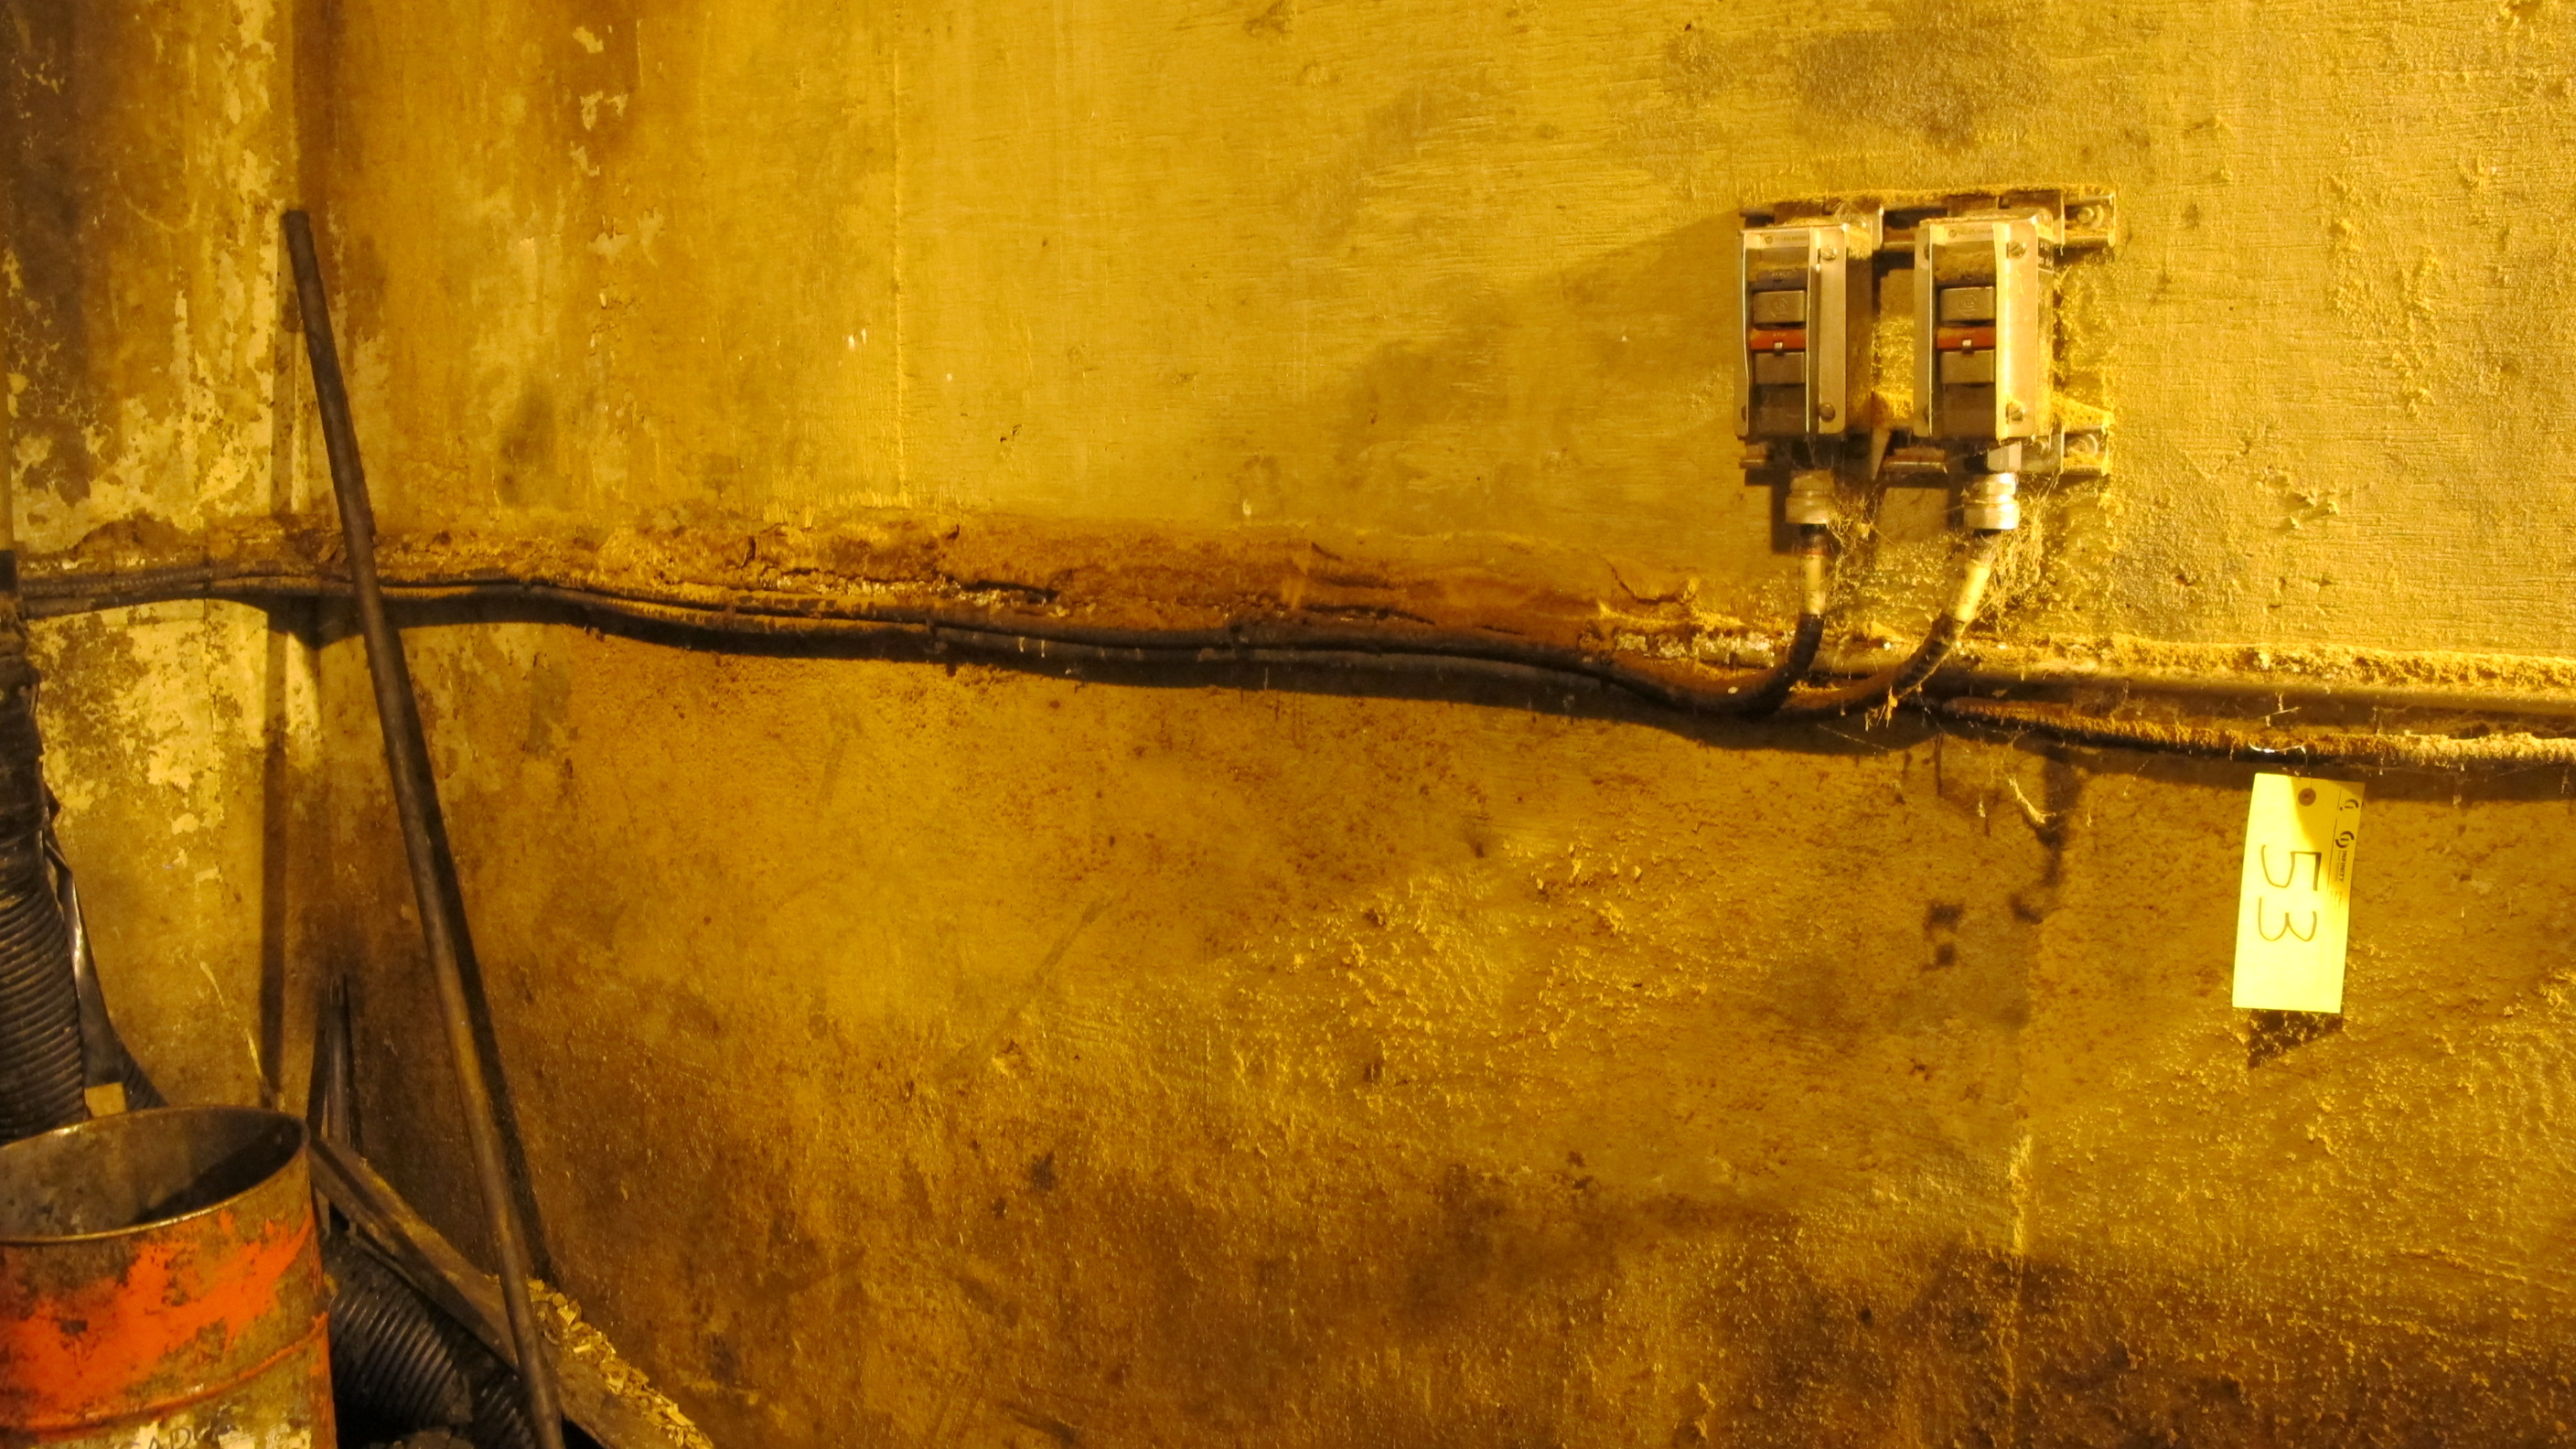 Lot 42A - LARGE QTY OF ASST. TECH CABLE, COPPER WIRE, ETC. THROUGHOUT SITE TO INCLUDE: APPROX 200' OF TECH